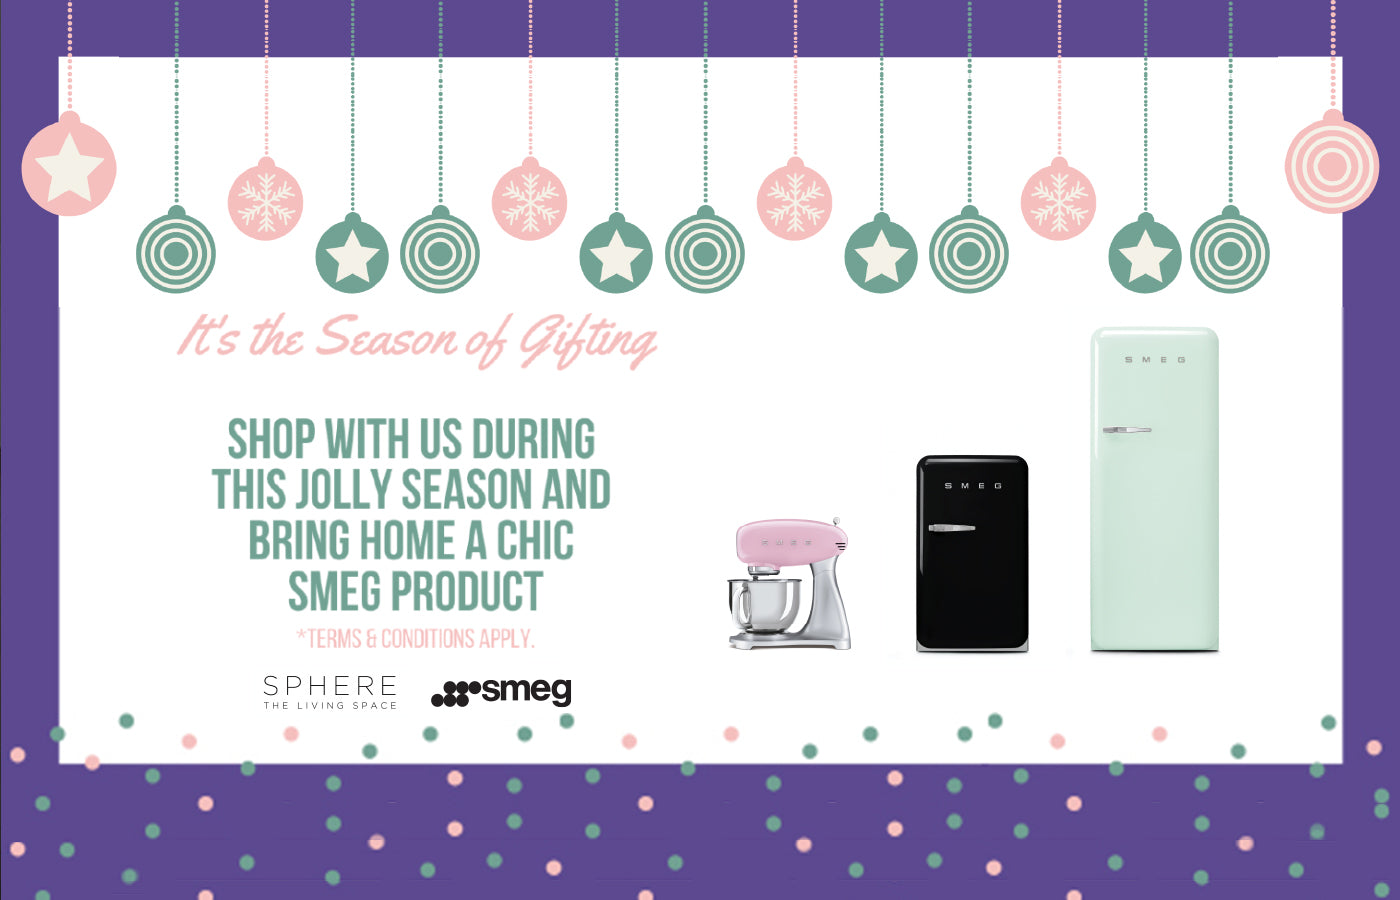 Sphere Living Season of Gifting!